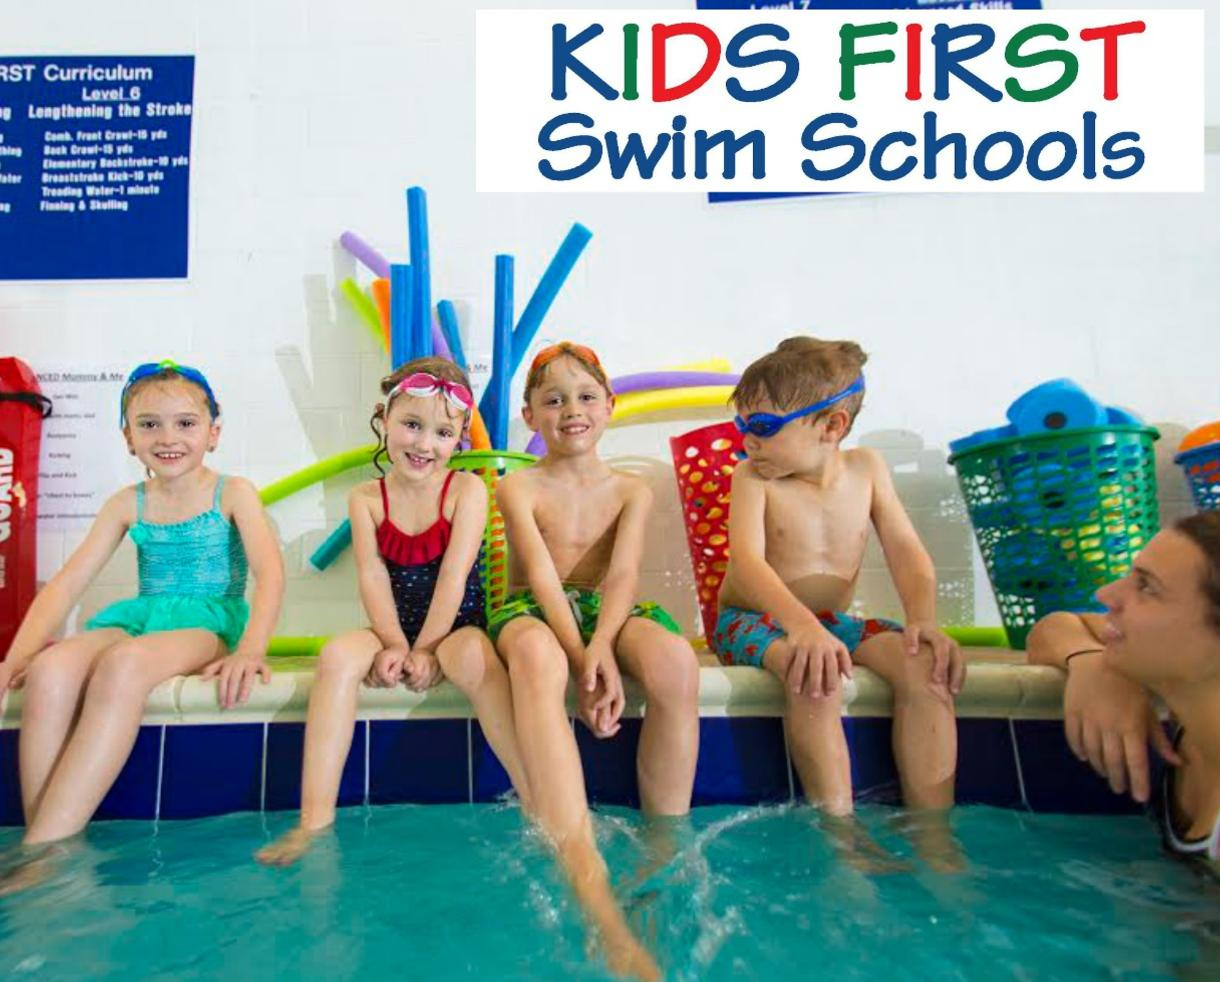 $50 for FOUR Swim Lessons at Kids First Swim School - Maryland & Virginia Locations ($75 Value - 34% Off)